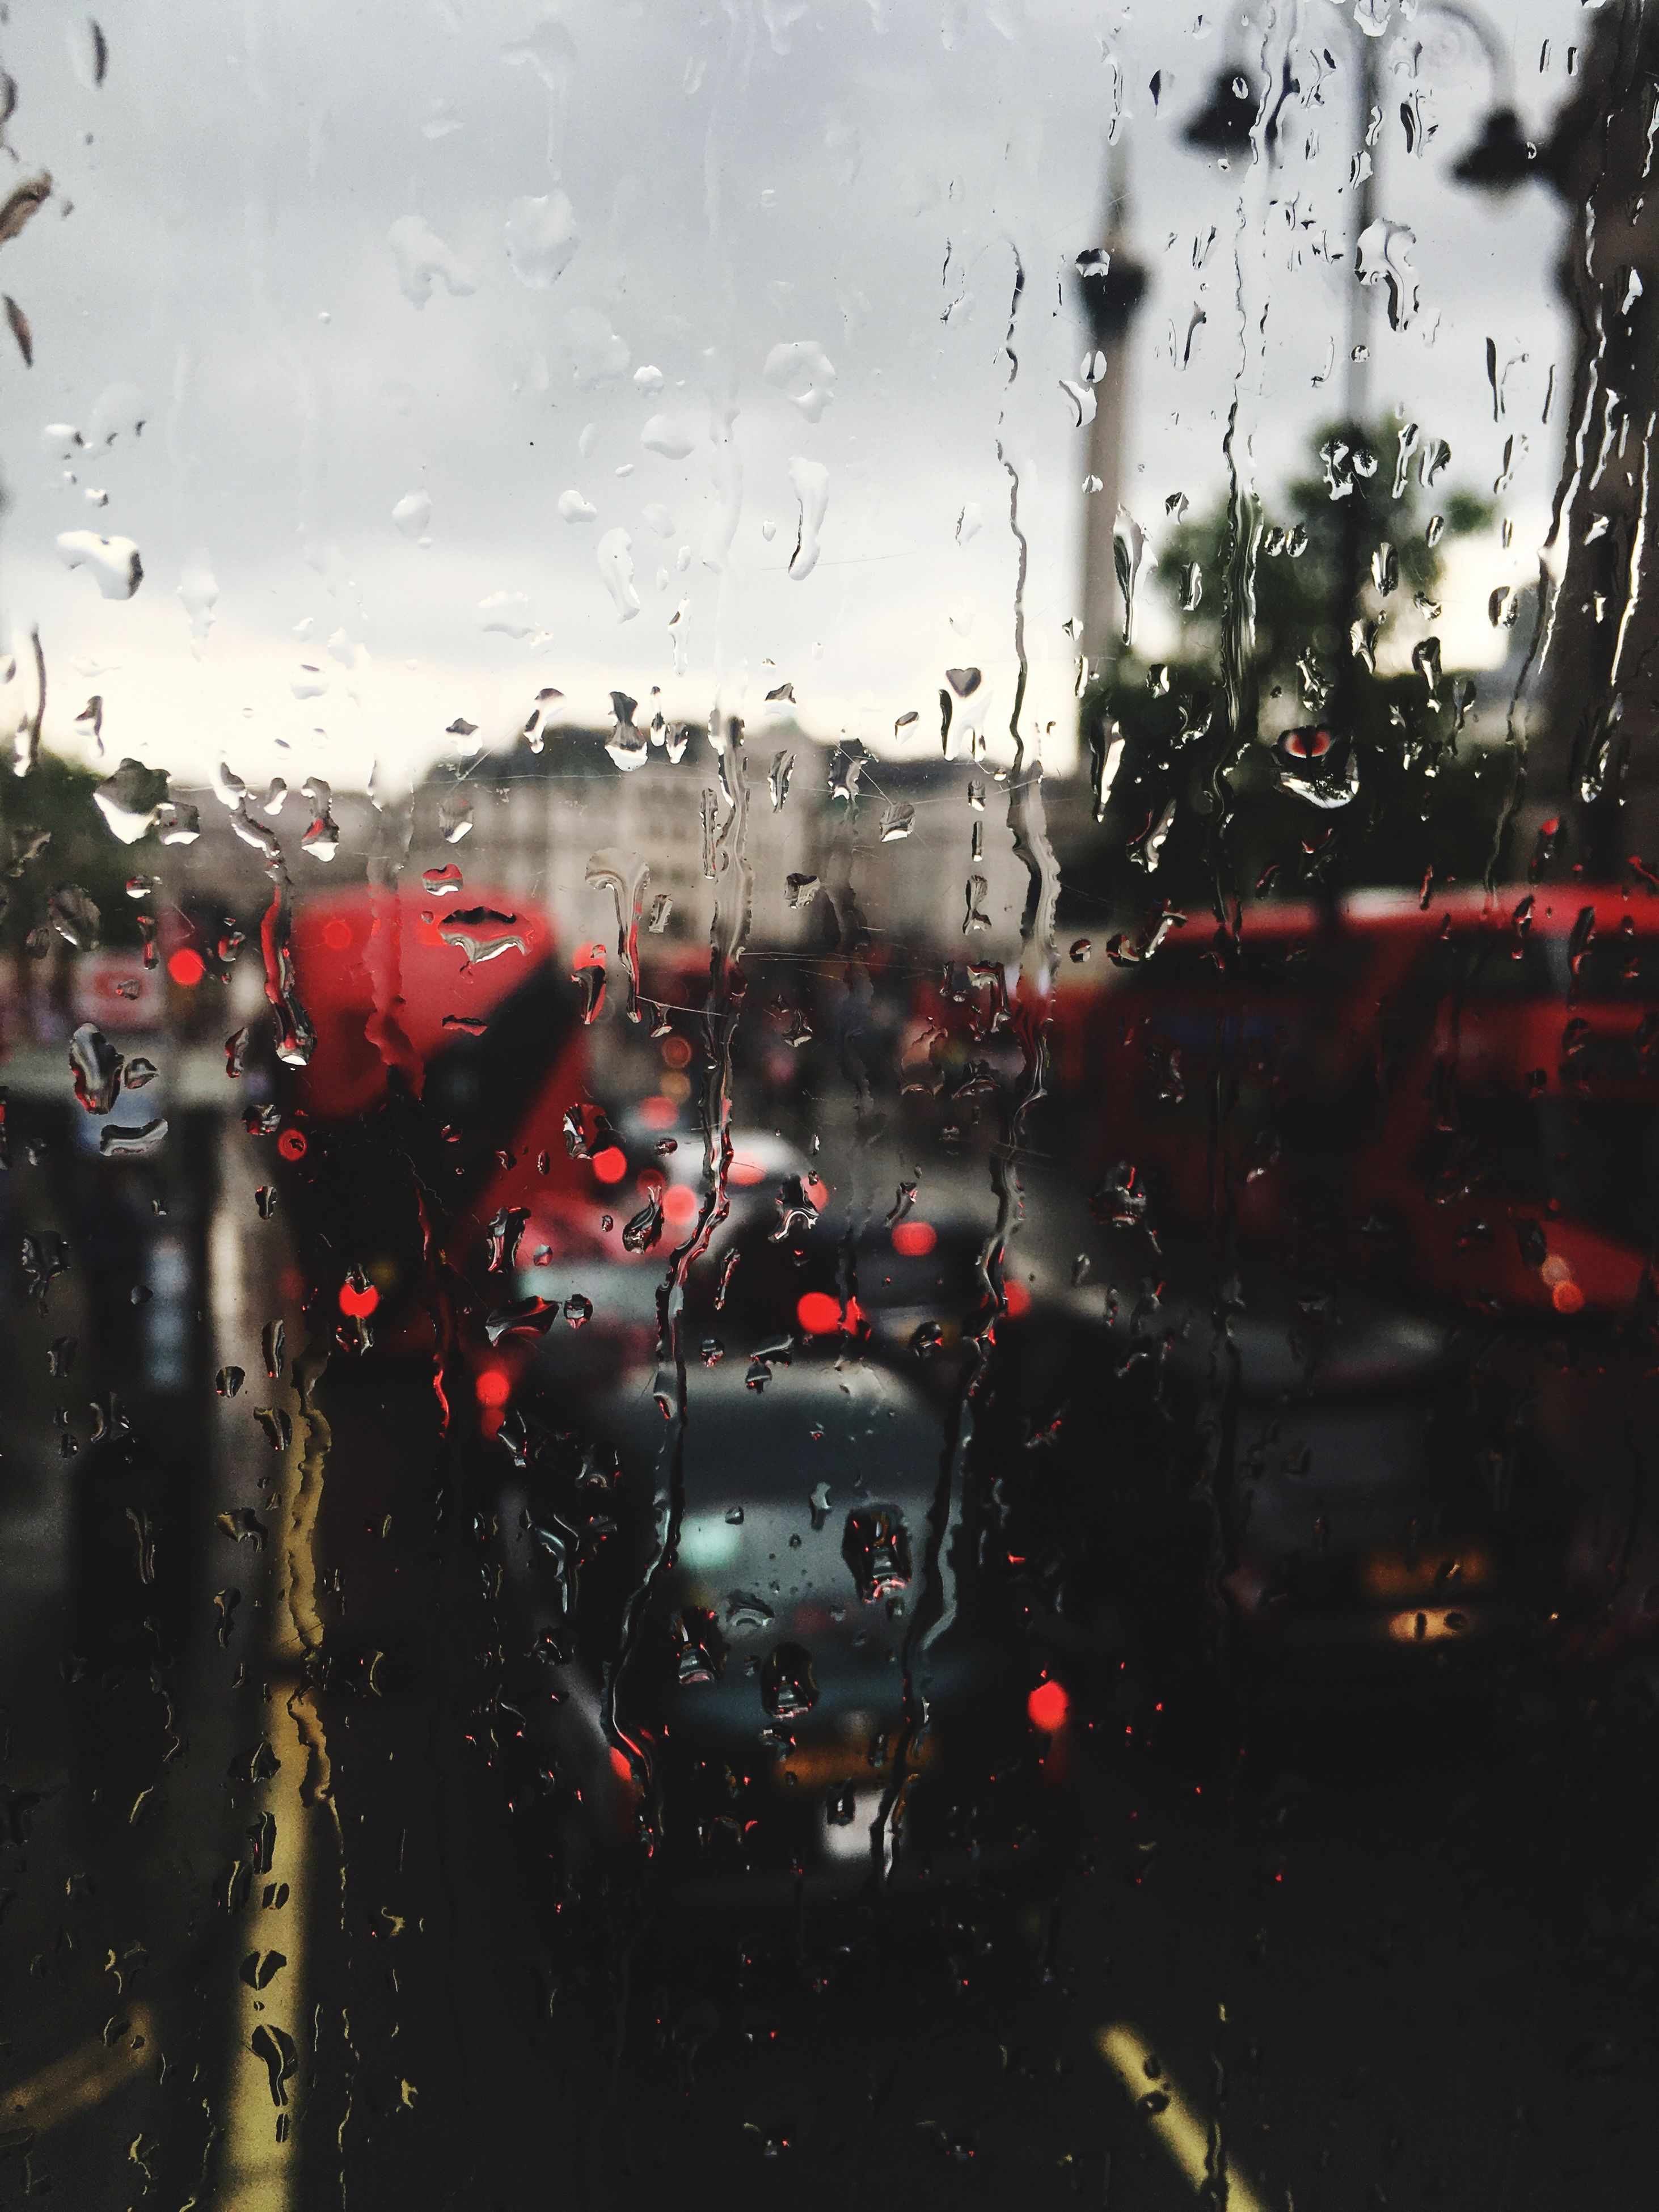 wet, rain, drop, window, transparent, car, transportation, glass - material, land vehicle, indoors, mode of transport, water, weather, raindrop, season, vehicle interior, street, road, city, windshield